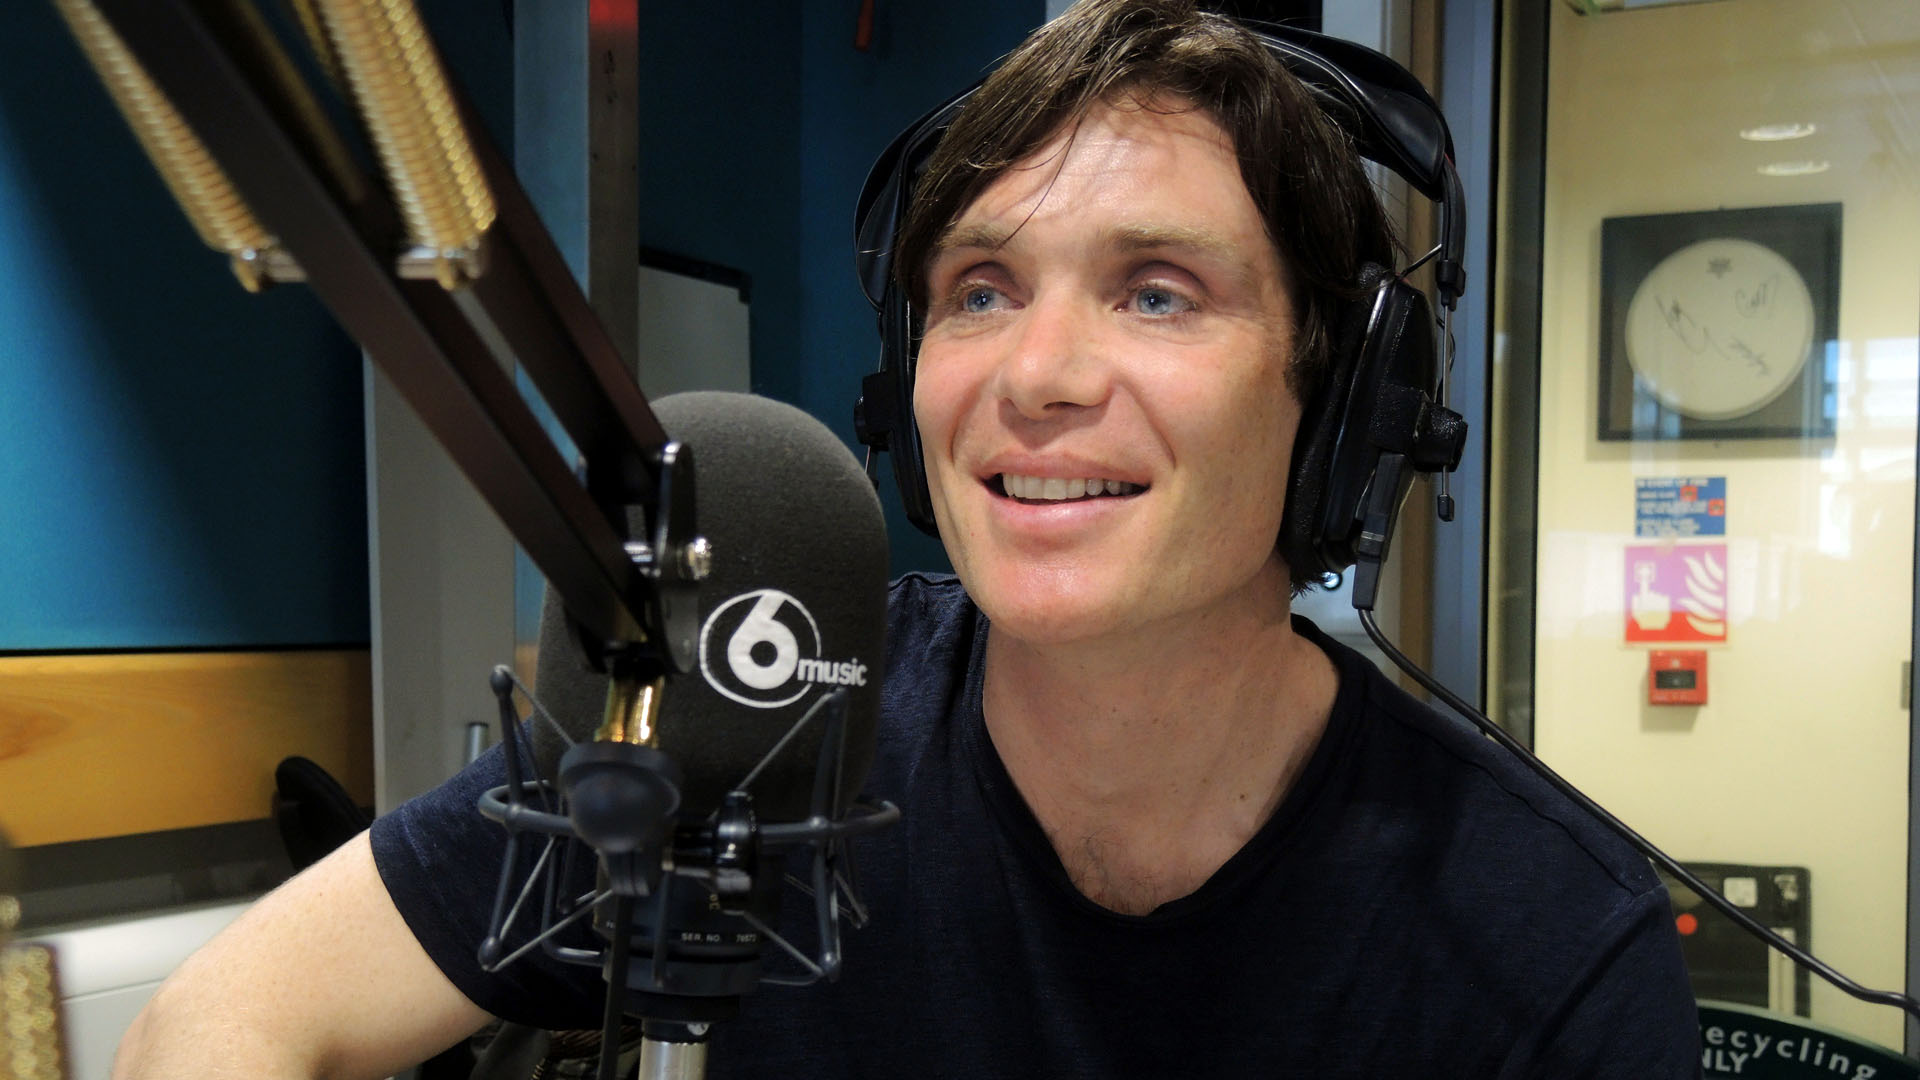 Cillian Murphy at 6 Music